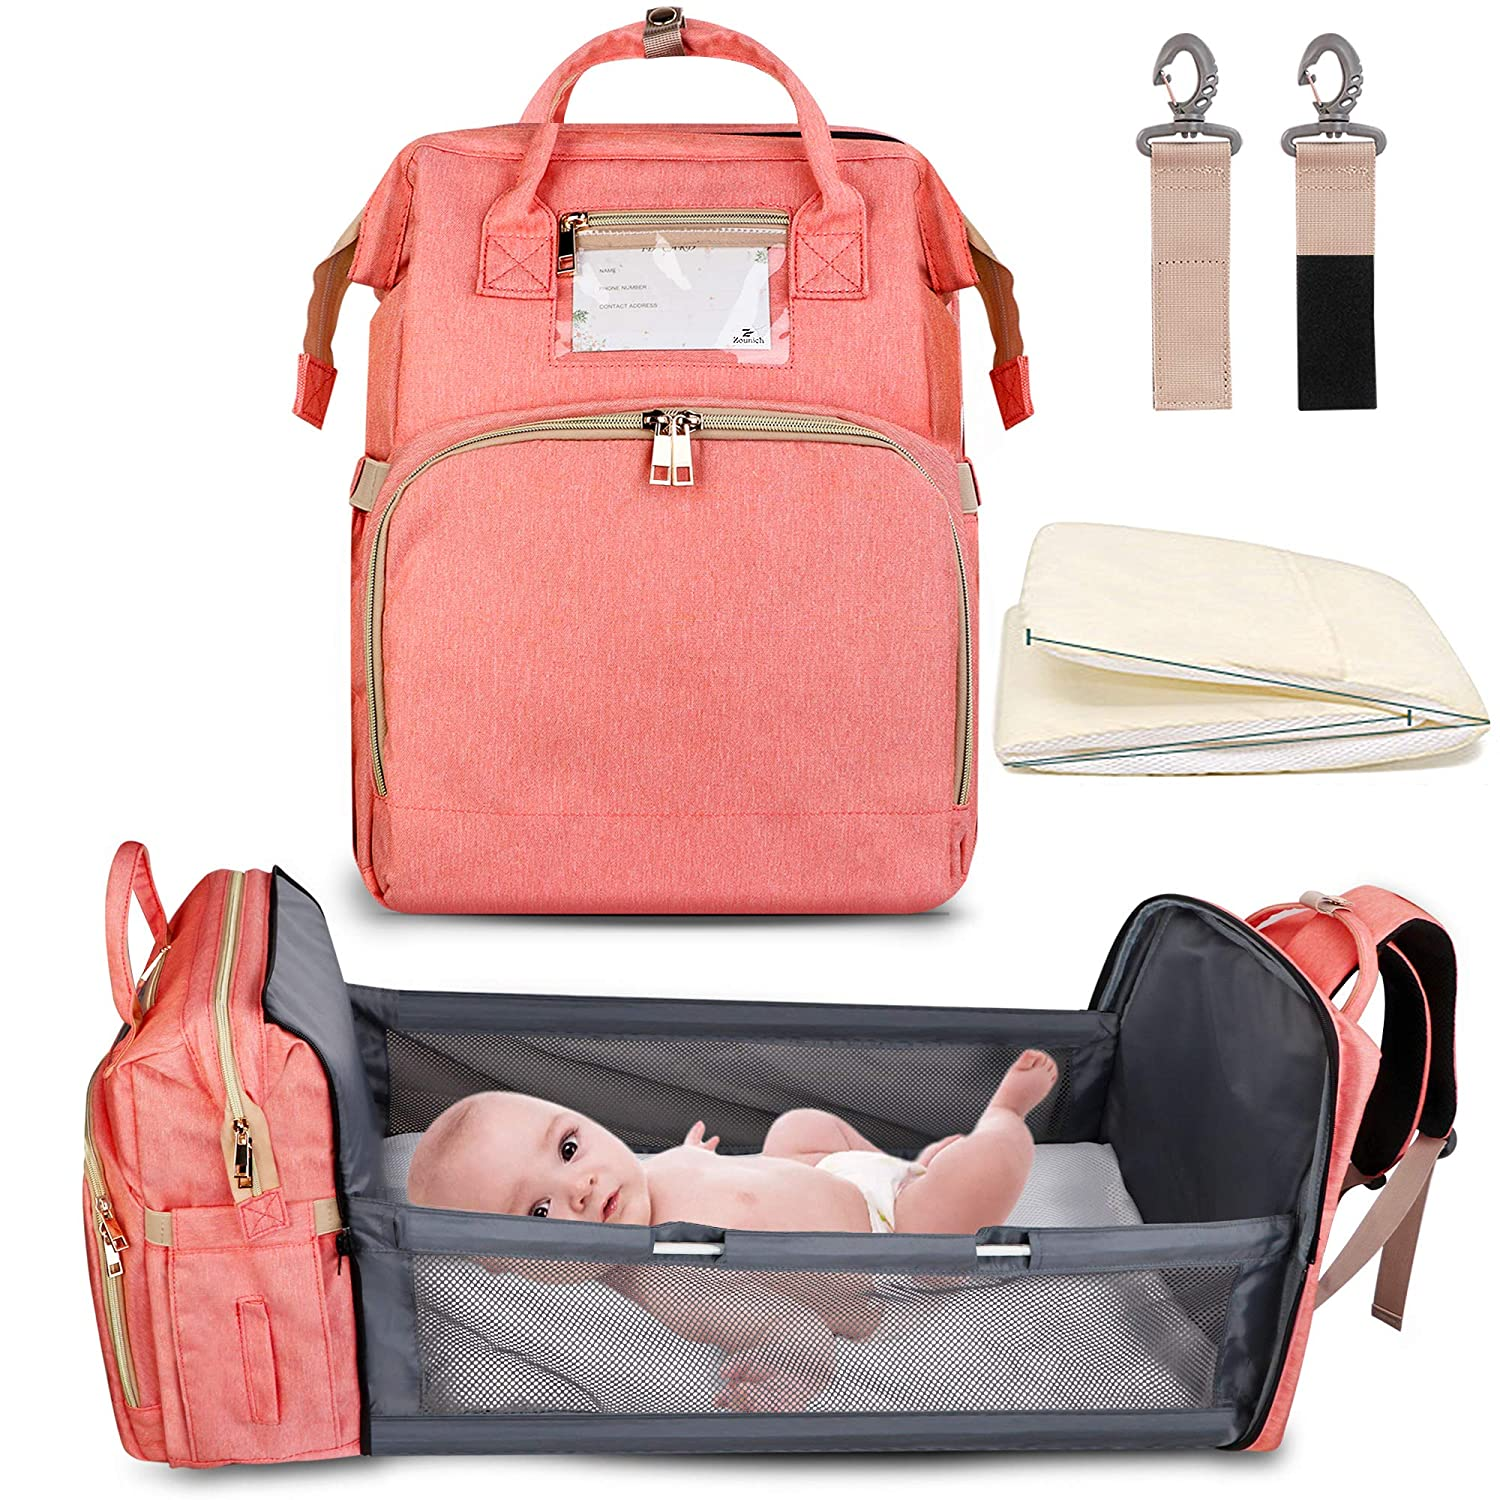 5-in-1 Travel Bassinet Foldable Baby Bed, ZOUNICH Diaper Bag Backpack Changing Station for Men Women,Portable Bassinets for Baby Girls Boys, Travel Crib Infant Sleeper,Baby Nest with Mattress Included